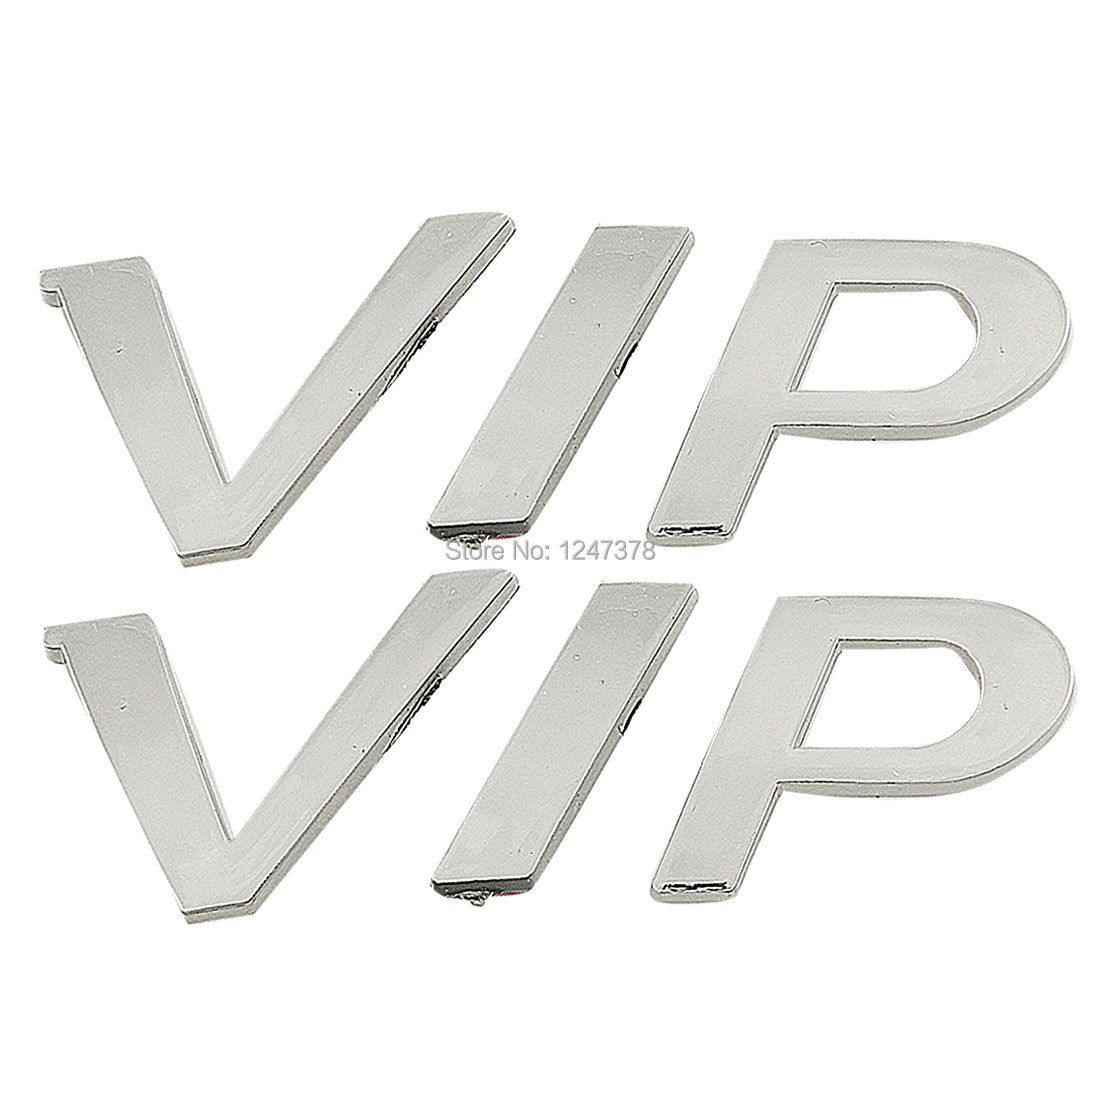 2 Pcs/lot VIP Letters Design Decor Car Badge Sticker Silver Tone styling detector Discount 50(China (Mainland))